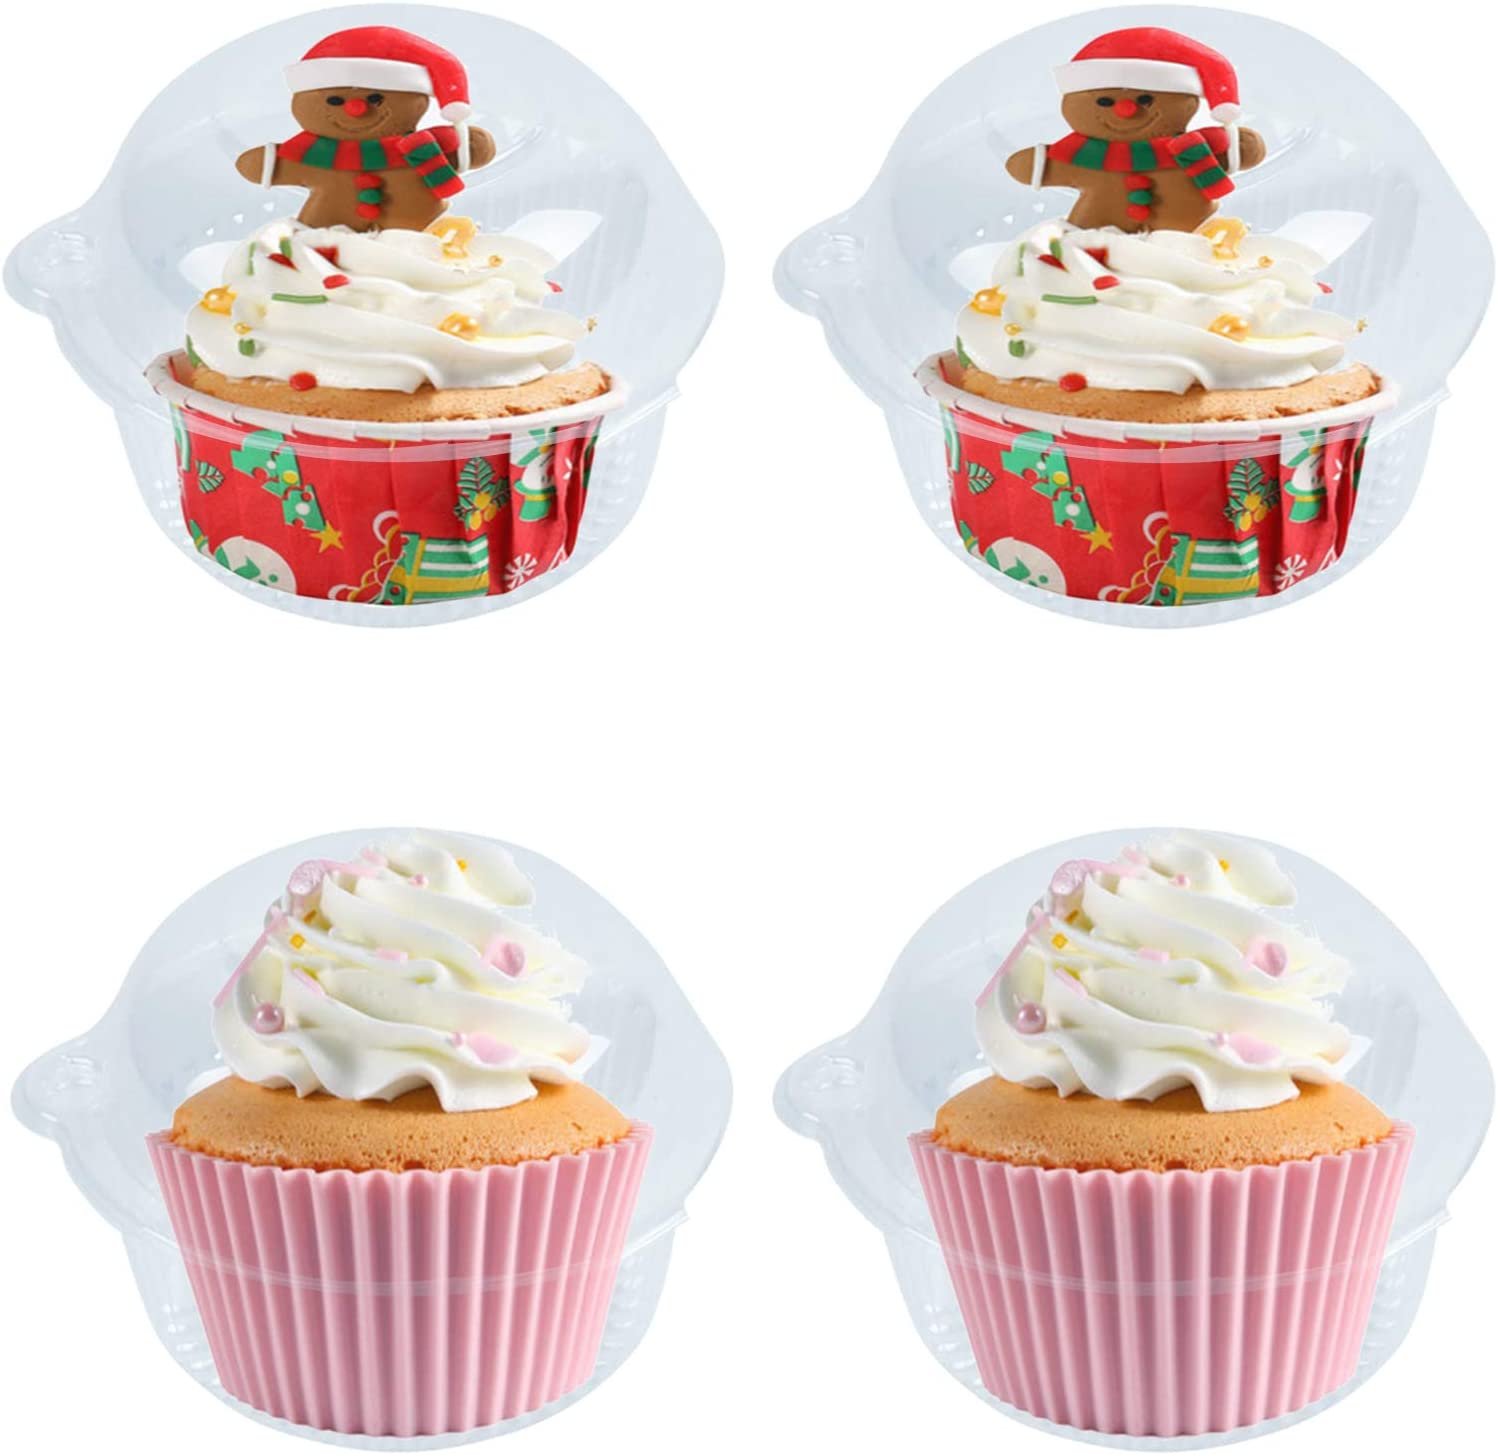 50 Pack Single Individual Cupcake Boxes, Disposable Clear Plastic Dome Cupcake Containers for Sandwich Hamburgers Fruit Salad Party Favor Stackable Cake Holder Muffin Case Cups Pod.